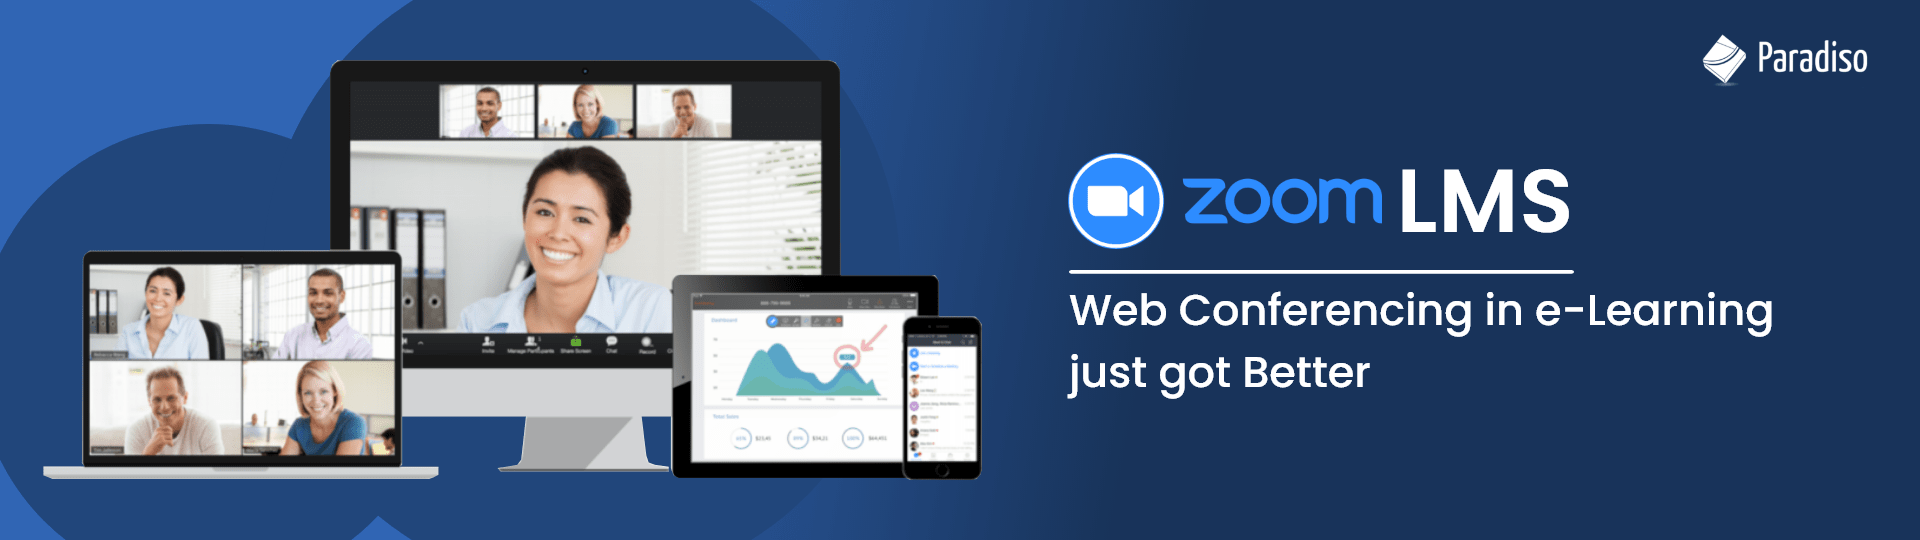 Zoom LMS – Web Conferencing in e-Learning just got Better